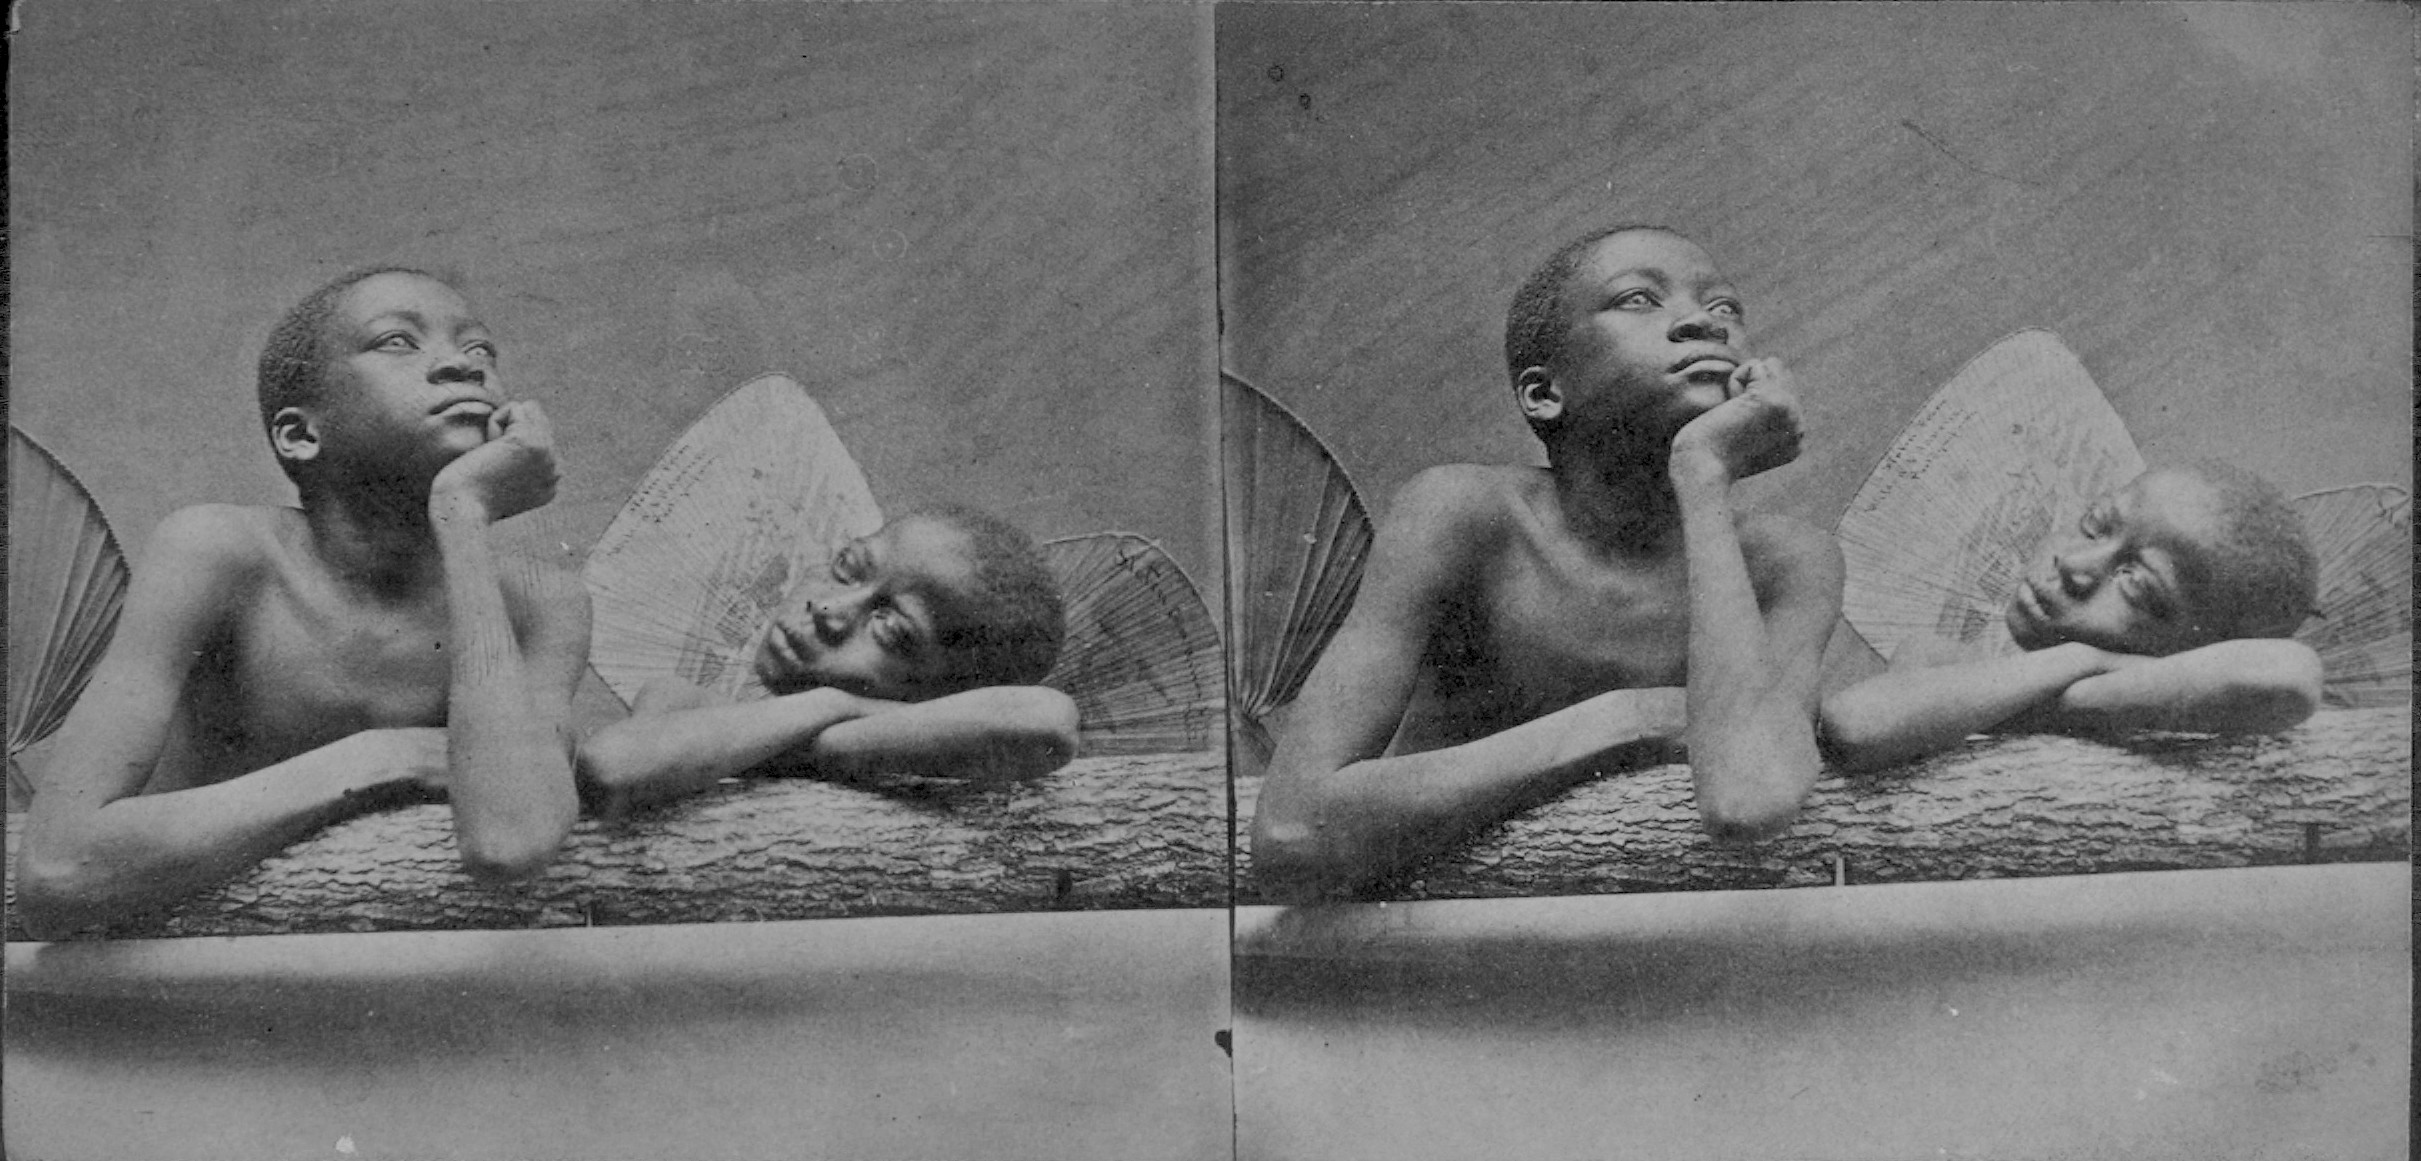 Cherubs_from_Robert_N._Dennis_collection_of_stereoscopic_views.jpg